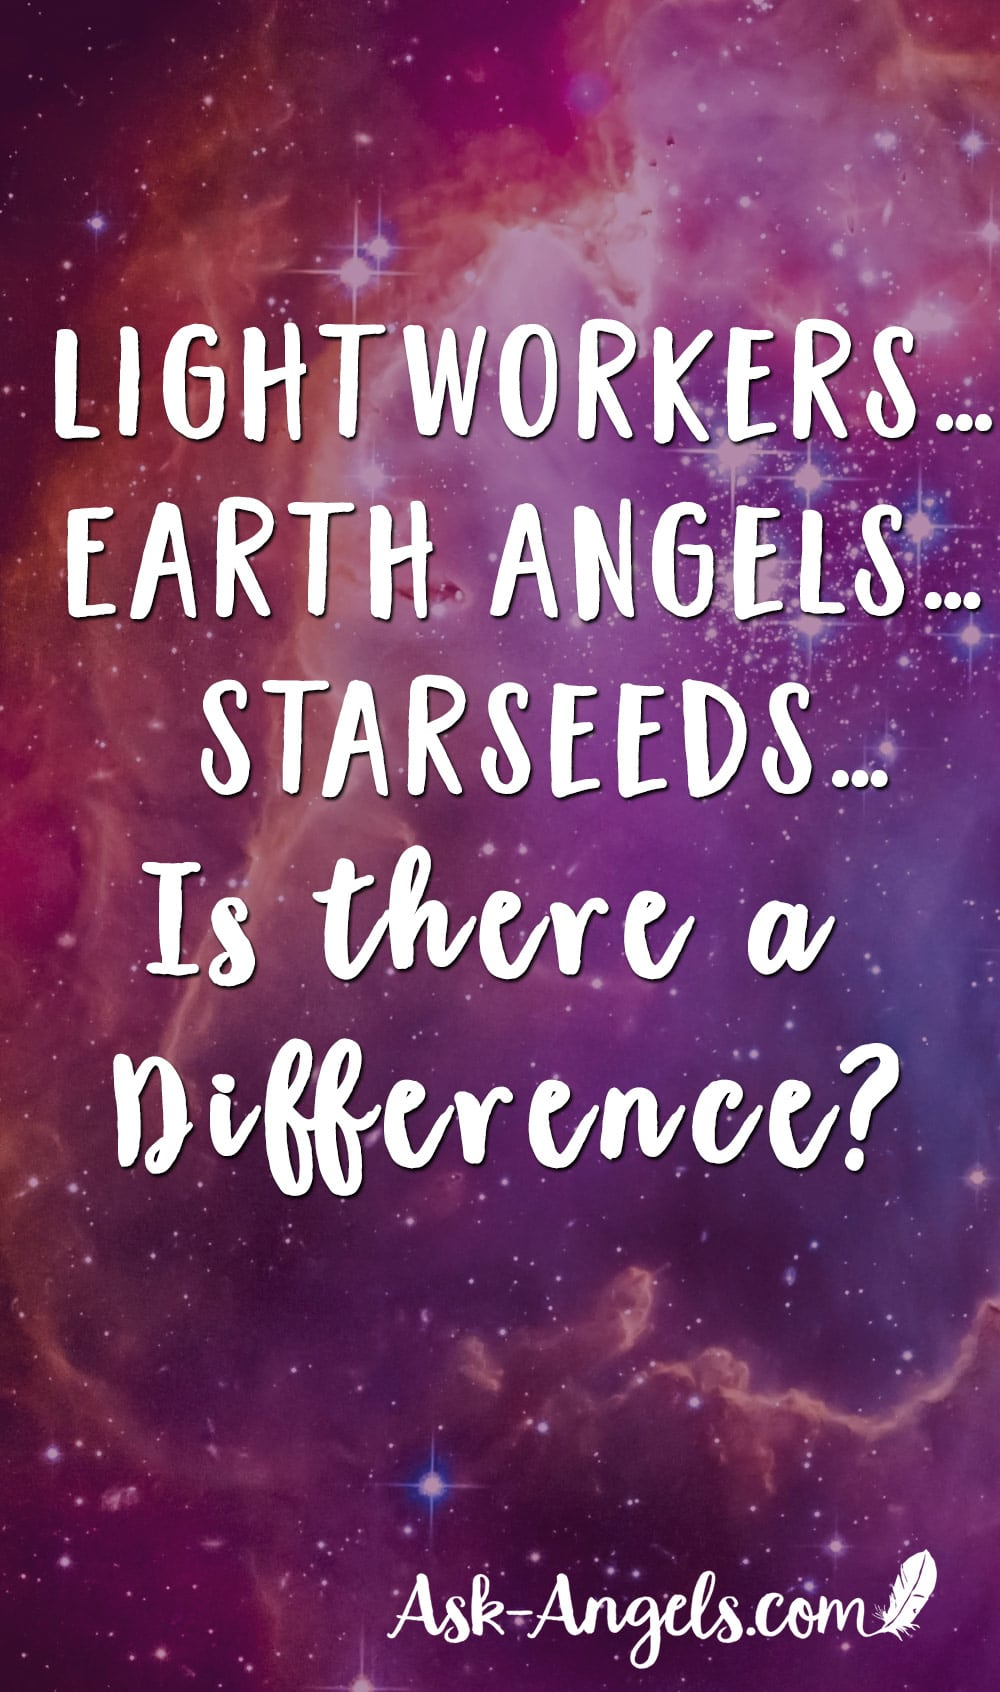 Lightworkers. Earth Angels. Starseeds. The same or different?